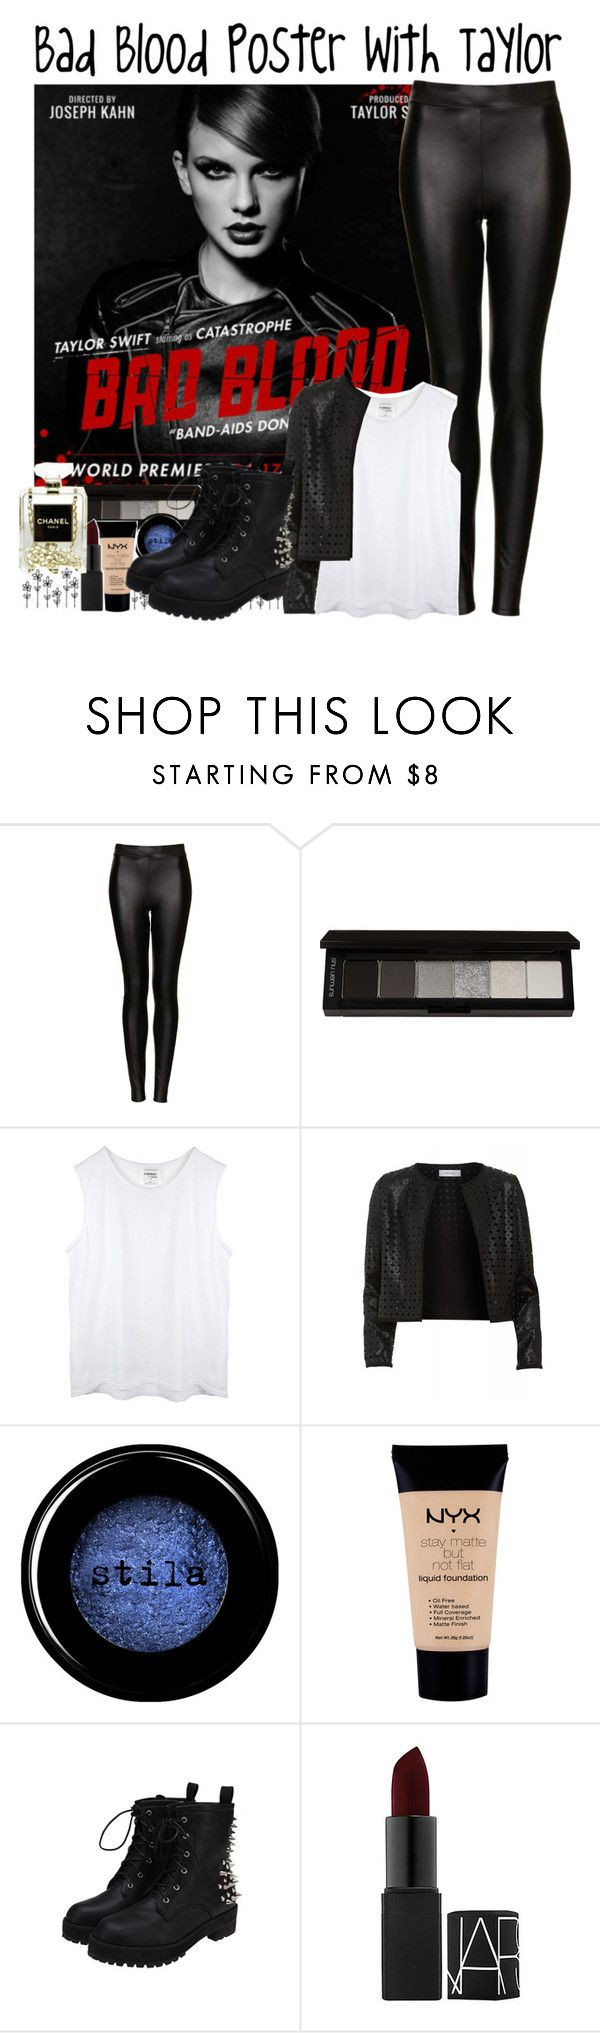 """""""Bad Blood Poster with Taylor"""" by albamonkey ❤ liked on Polyvore featuring Topshop, shu uemura, Maglie I Blues, Stila, NYX, NARS Cosmetics and Chanel"""